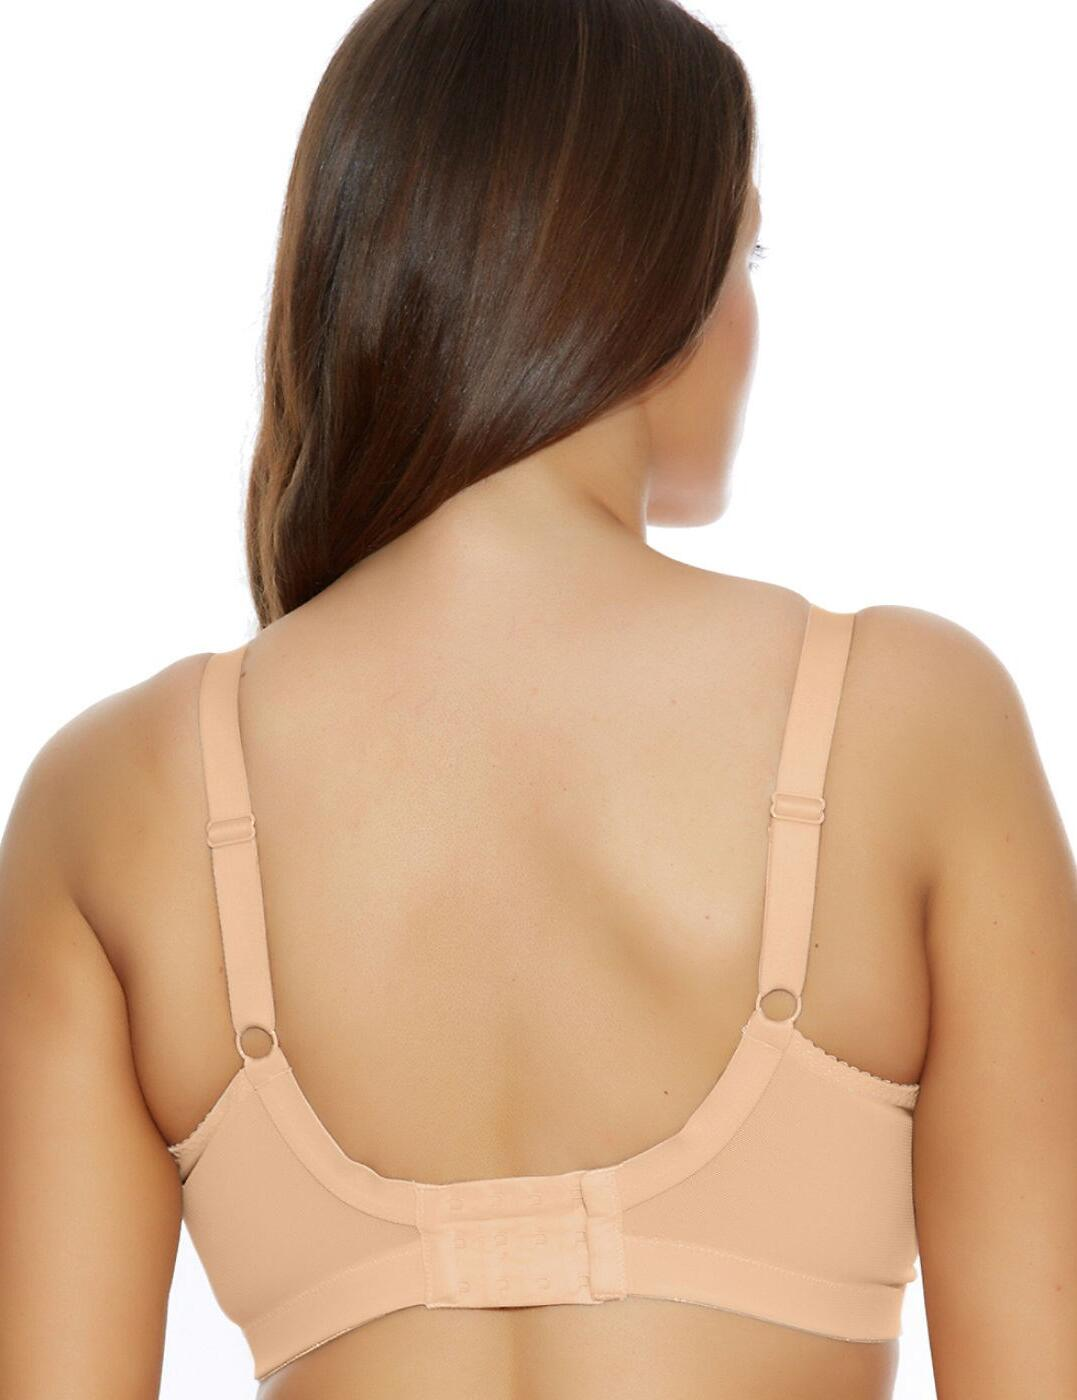 Elomi Lingerie Beatrice Soft Cup Non Wired Non Padded Nursing Bra Nude 8053